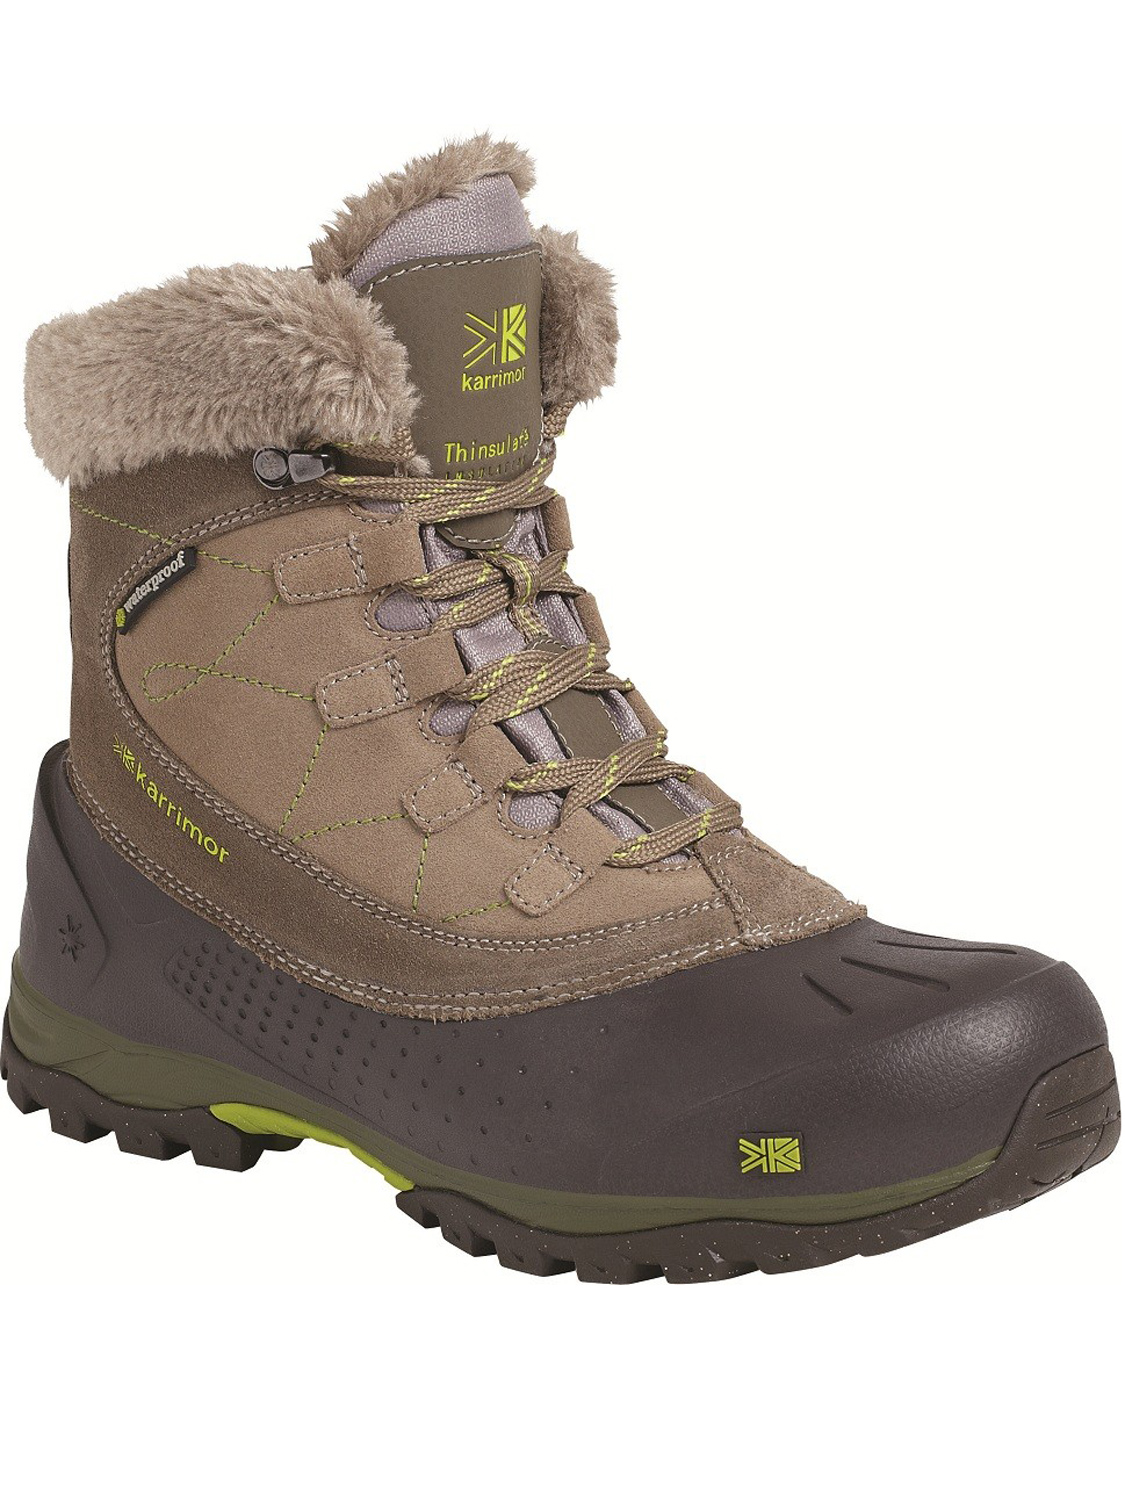 Excellent Boots Come In Brown, But For That Splash Of Color Consider Midnight Blue Retail Price Is $16499 Merrell Womens Moab LowProfile Hikers For A Hiking Boot That Fits In At The Gym Or At A Trailhead, Consider The Merrell Womens Moab Low